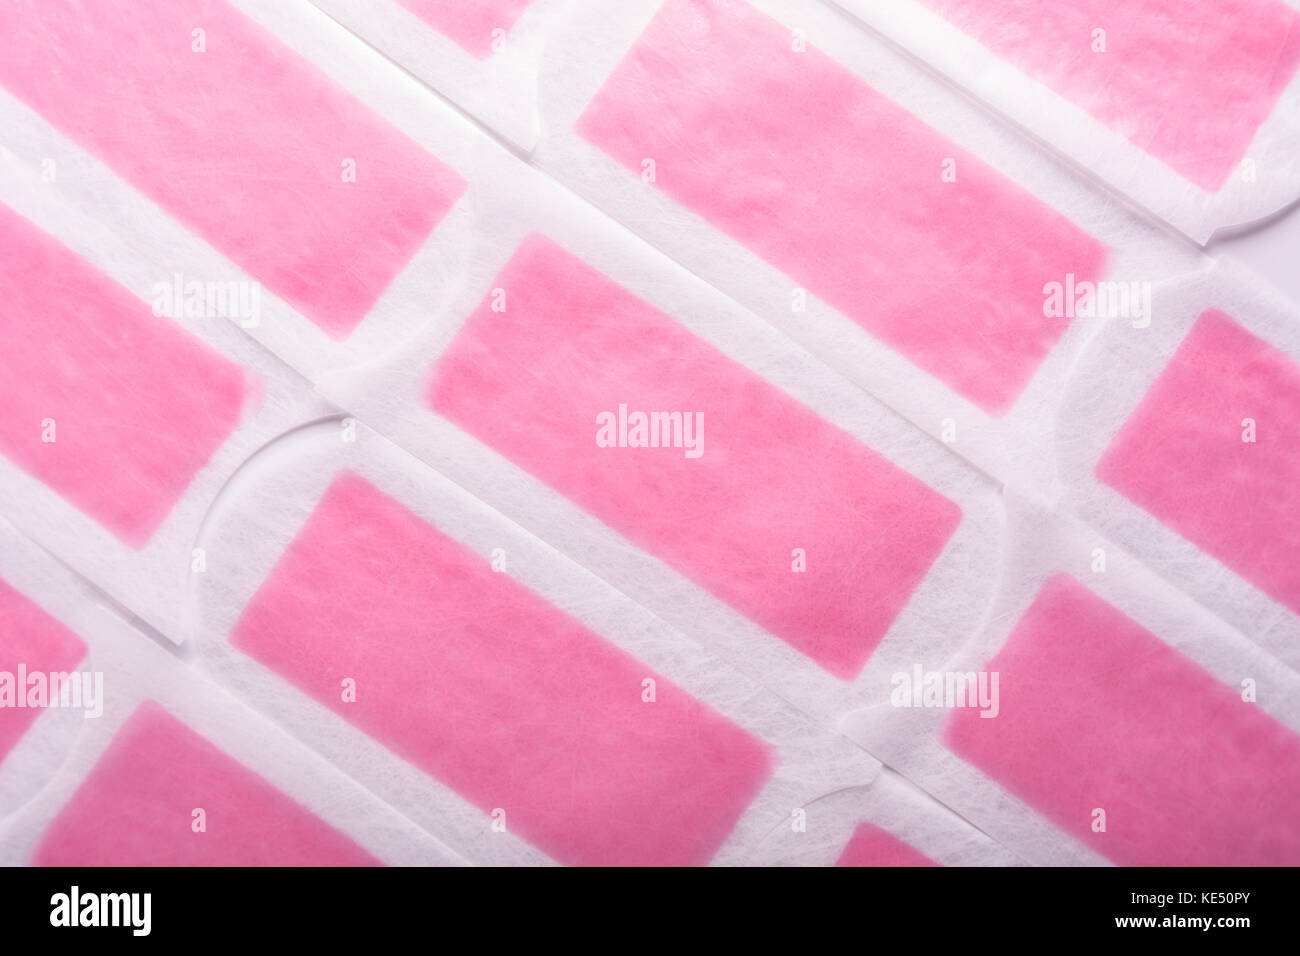 Hair removal wax strip. Depilation body hair background - Stock Image